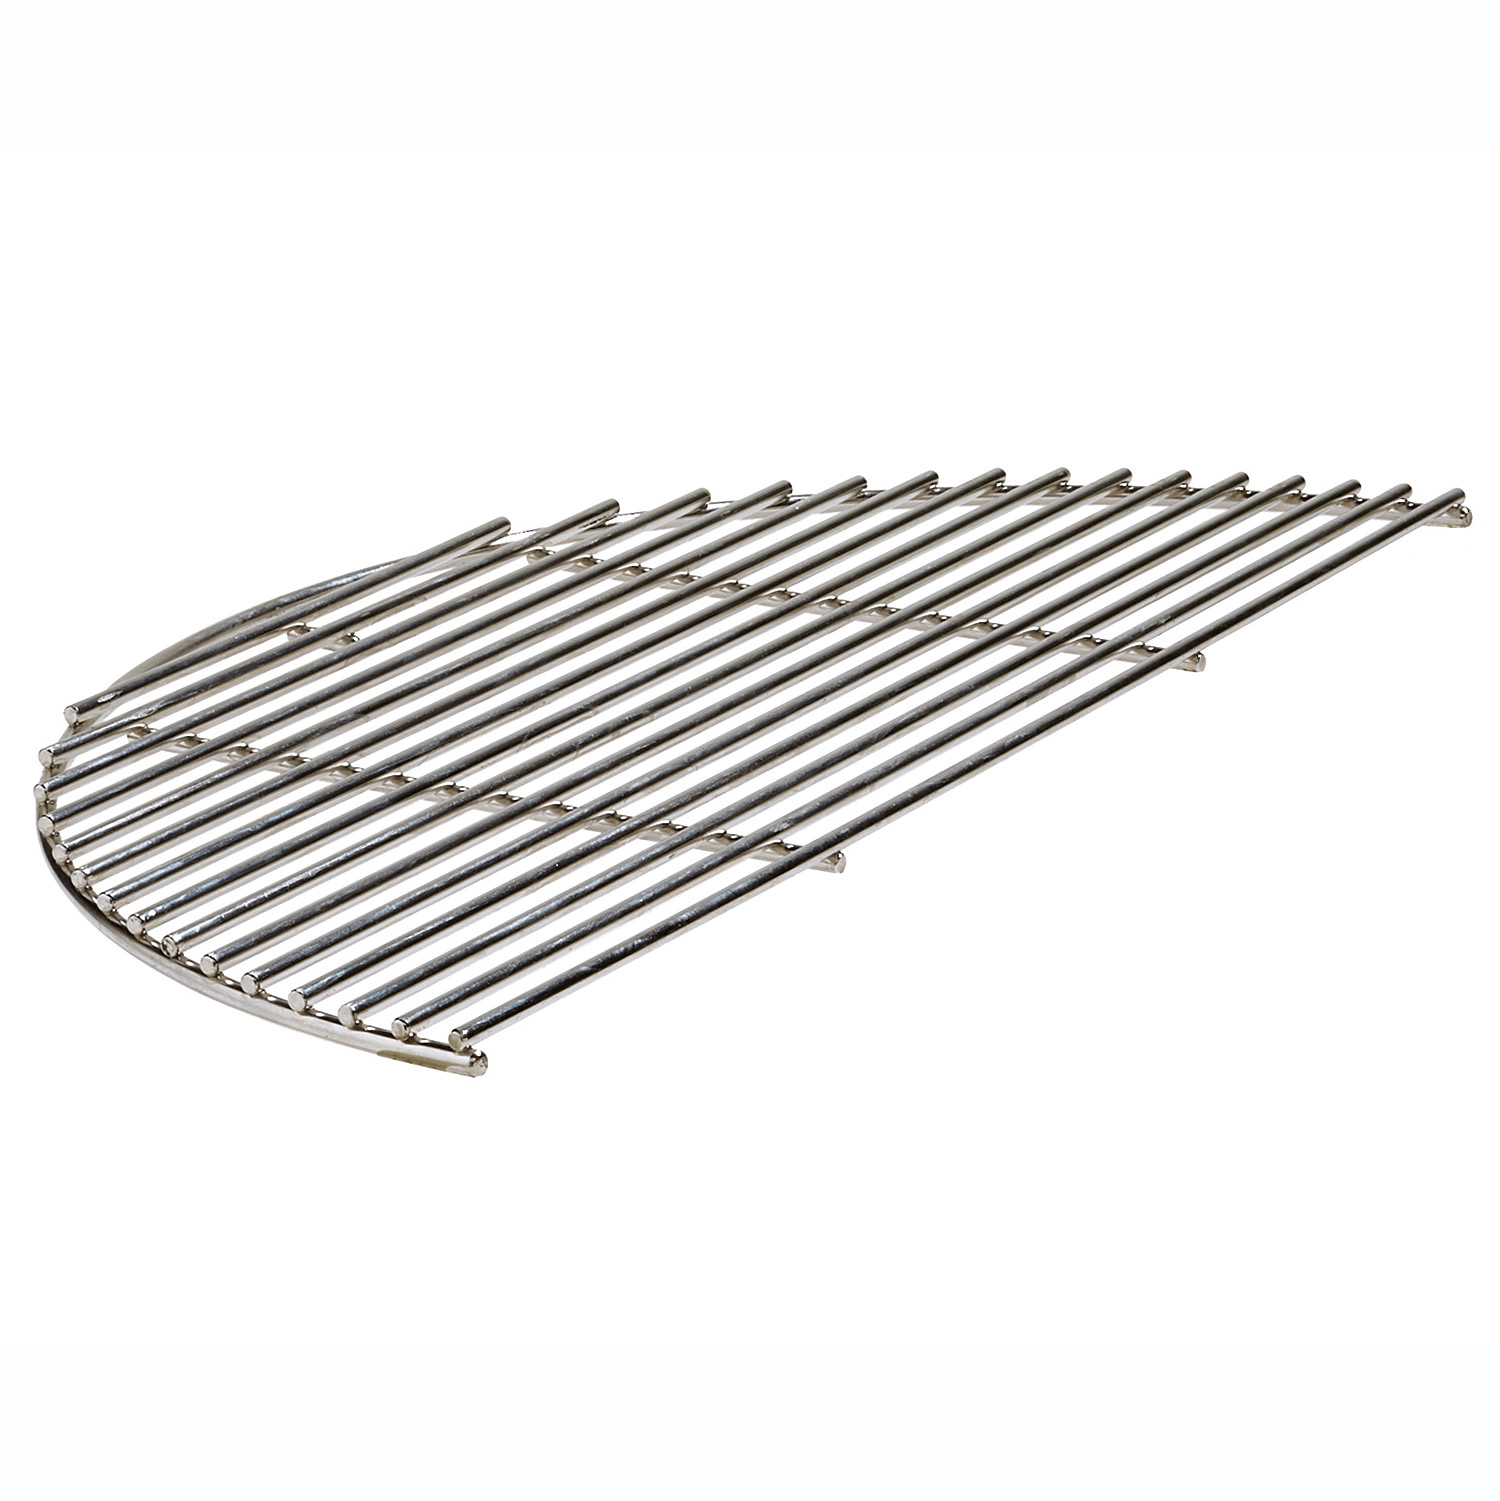 grates rack cooking for bbq grills grill charcoal hinged grate weber parts